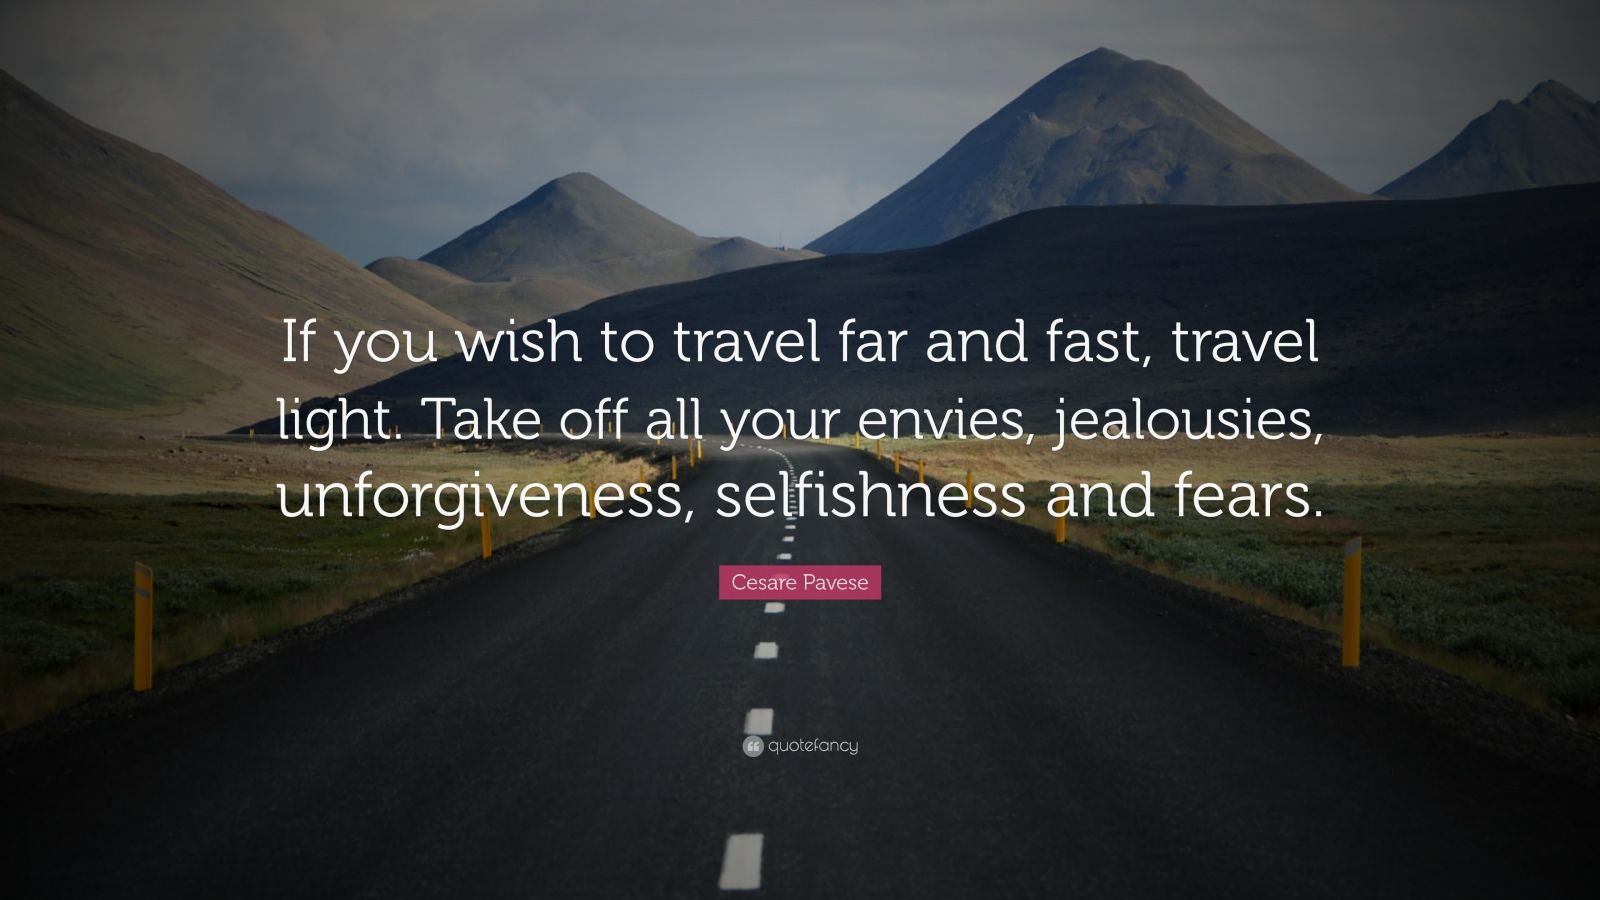 John Lennon Quotes Wallpaper Cesare Pavese Quote If You Wish To Travel Far And Fast